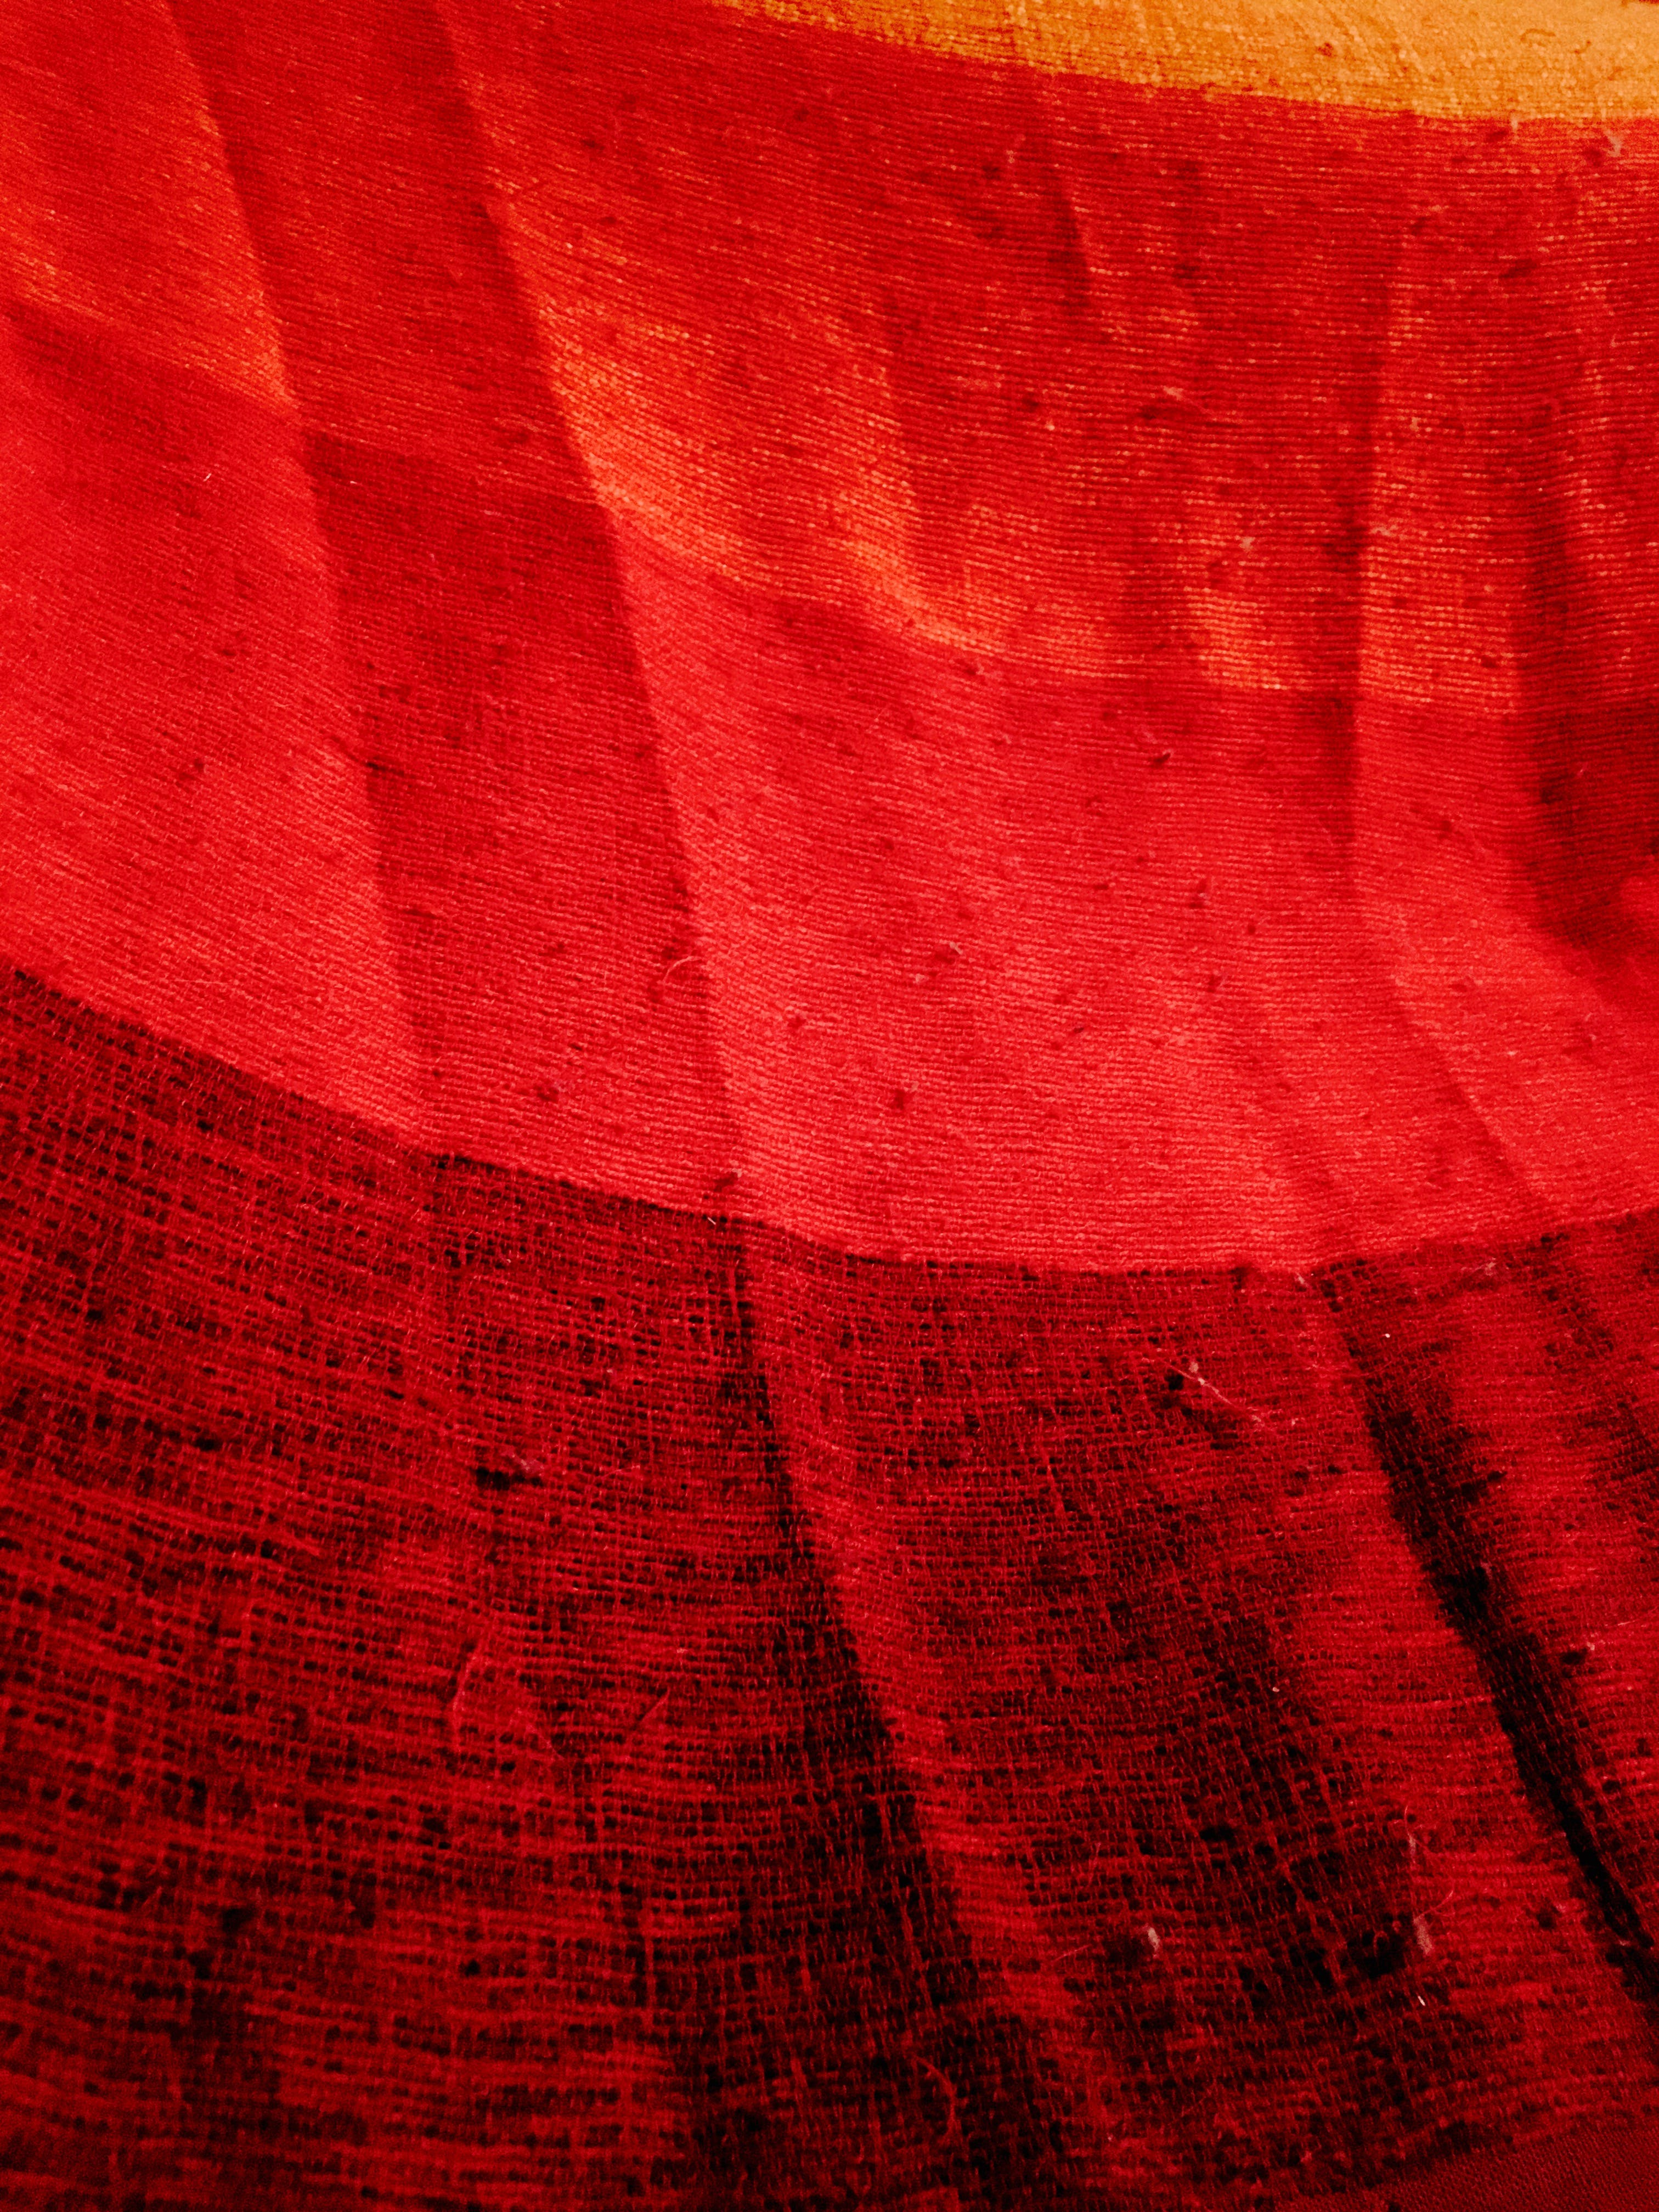 Free stock photo of red, colour, fabric, shades